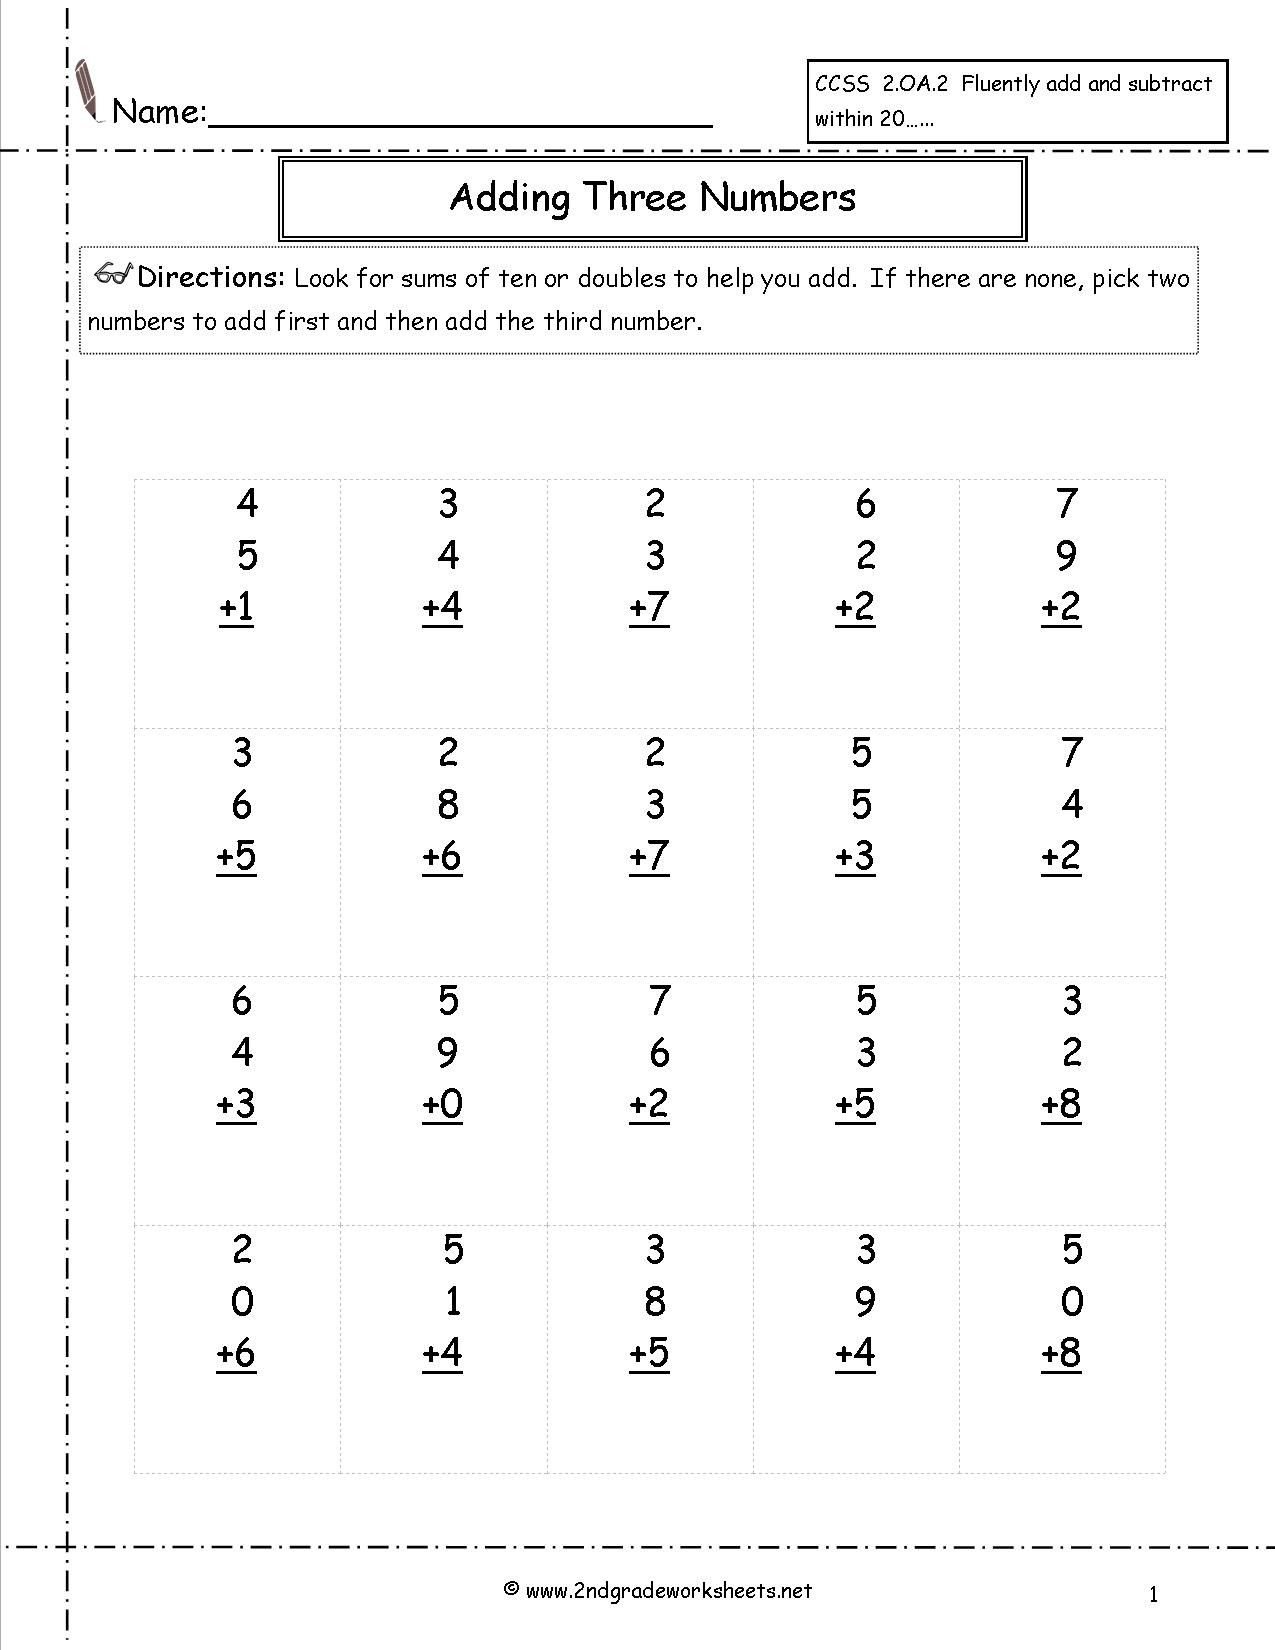 4 Free Math Worksheets Second Grade 2 Addition Add 3 Single Digit Numbers Free Printable Ma Free Math Worksheets 2nd Grade Worksheets 2nd Grade Math Worksheets